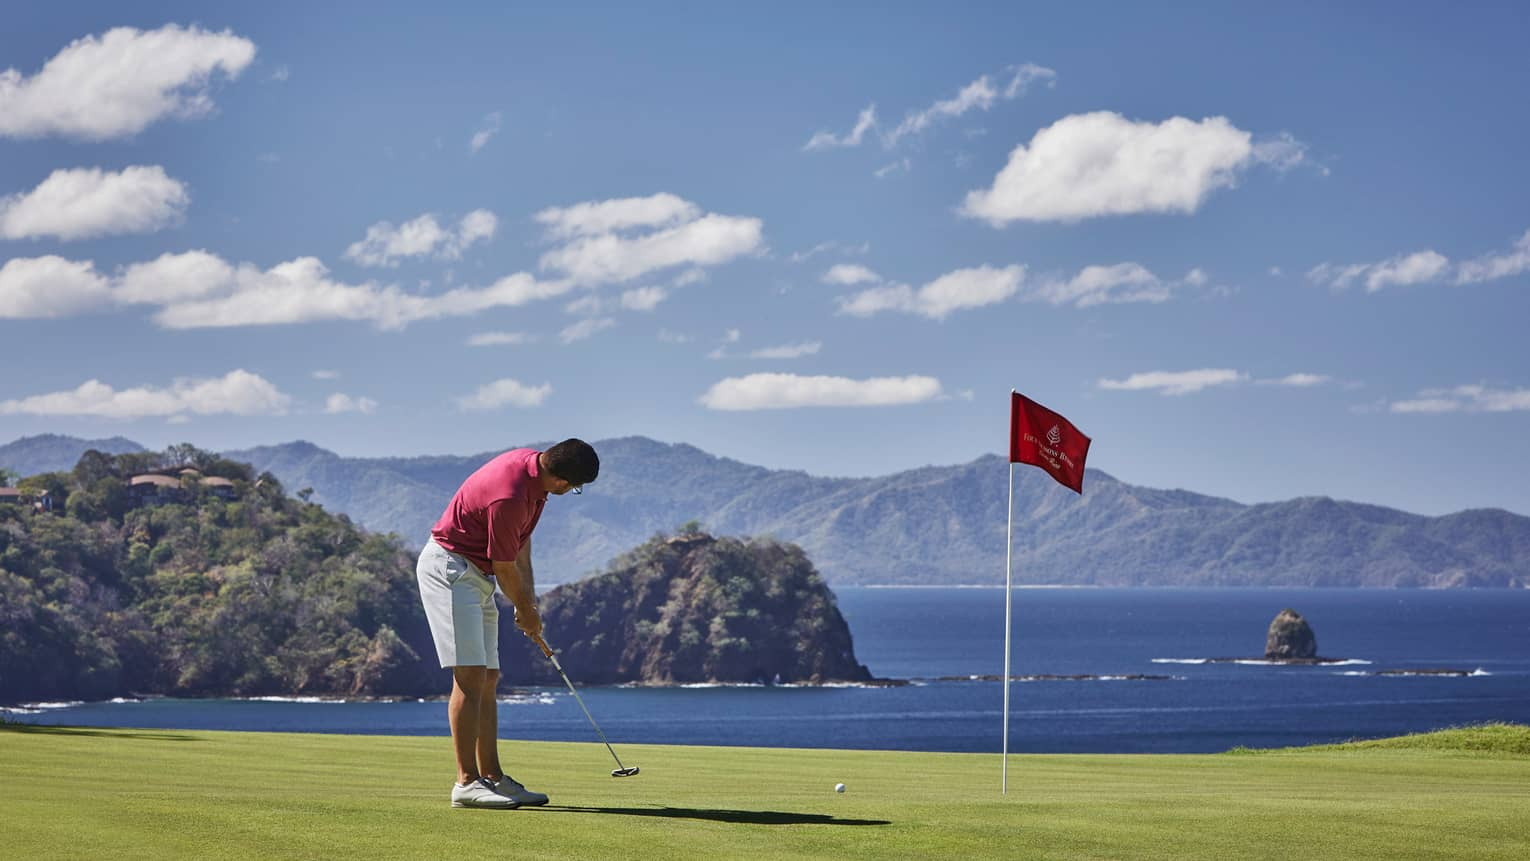 Man prepares to putt near red flag on golf green overlooking ocean